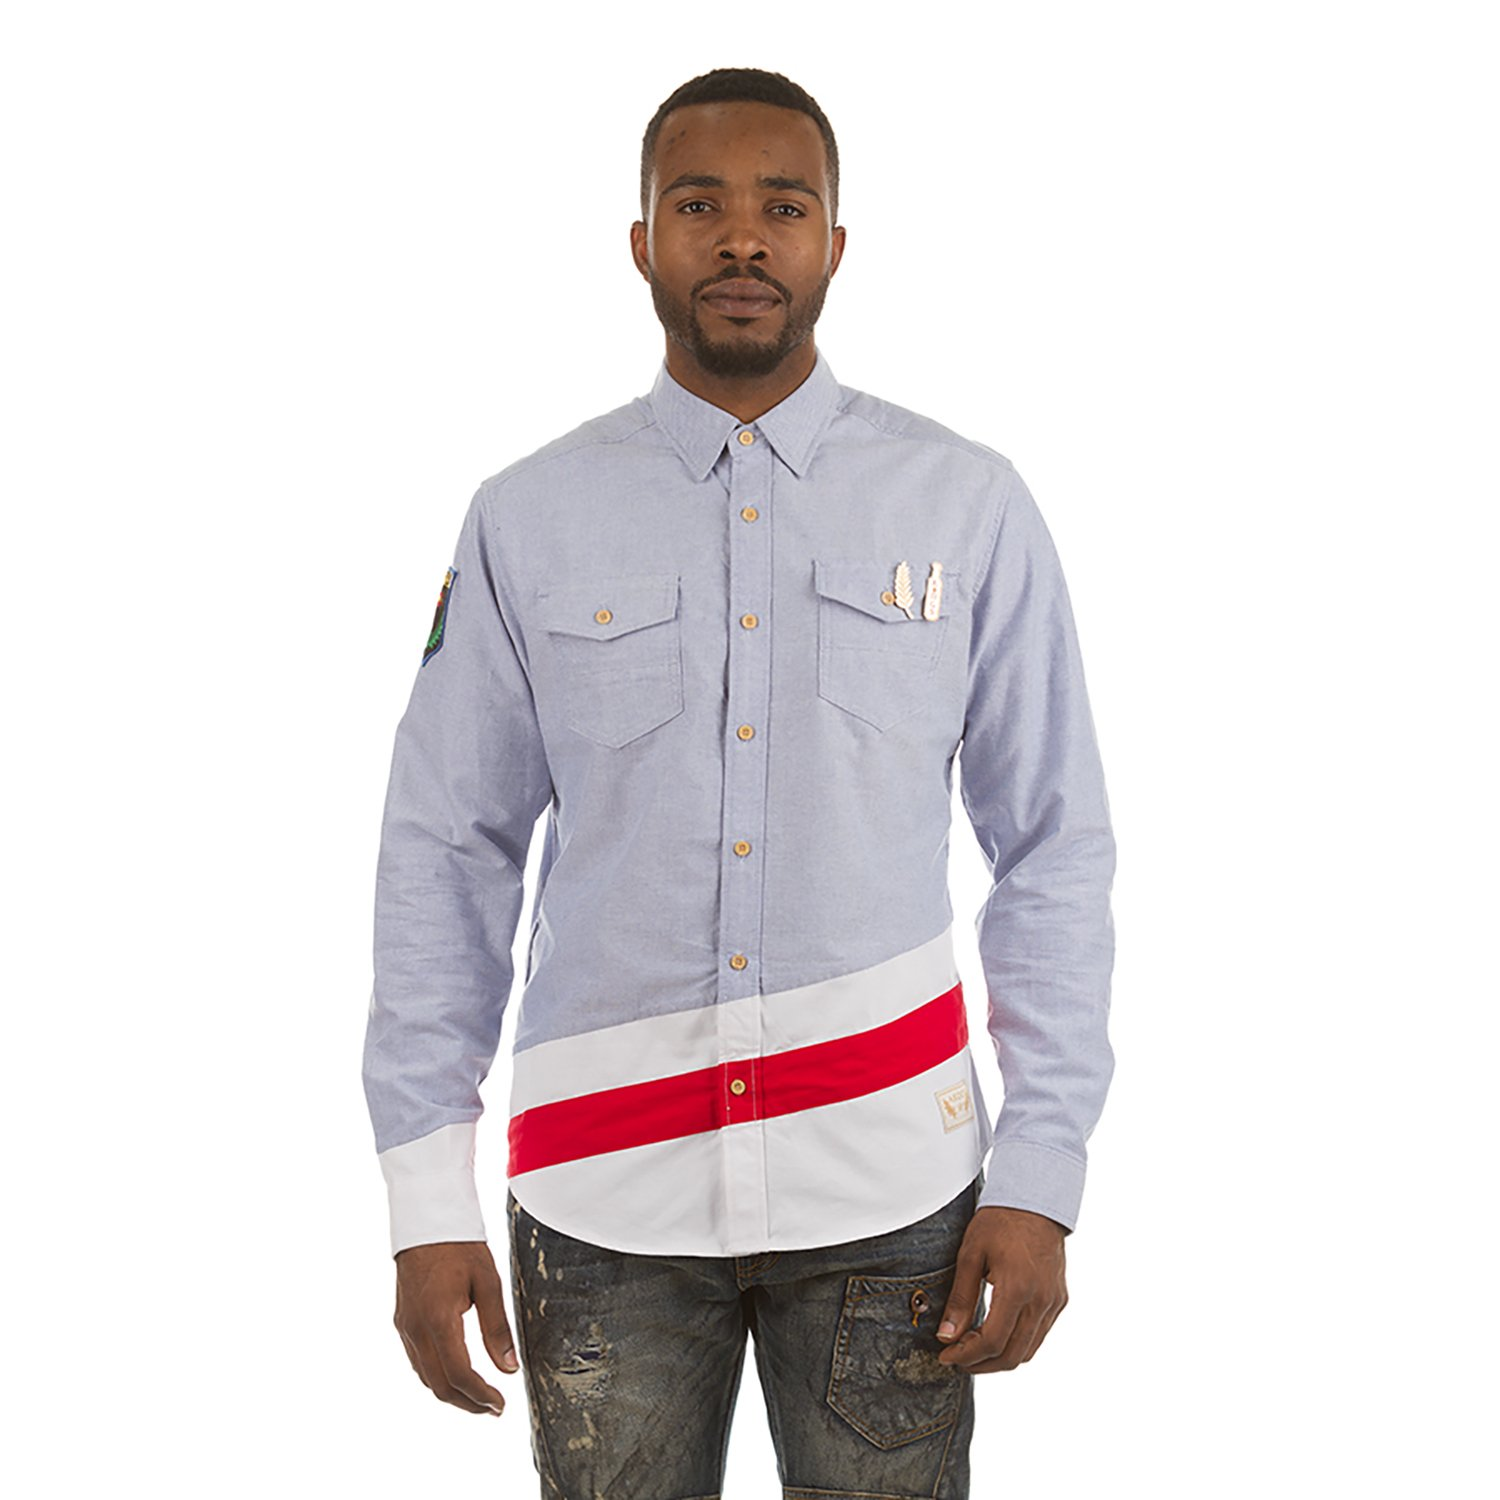 Akoo Undergrad L//S Woven Button Down Shirt In Blue Oxford 781-1600